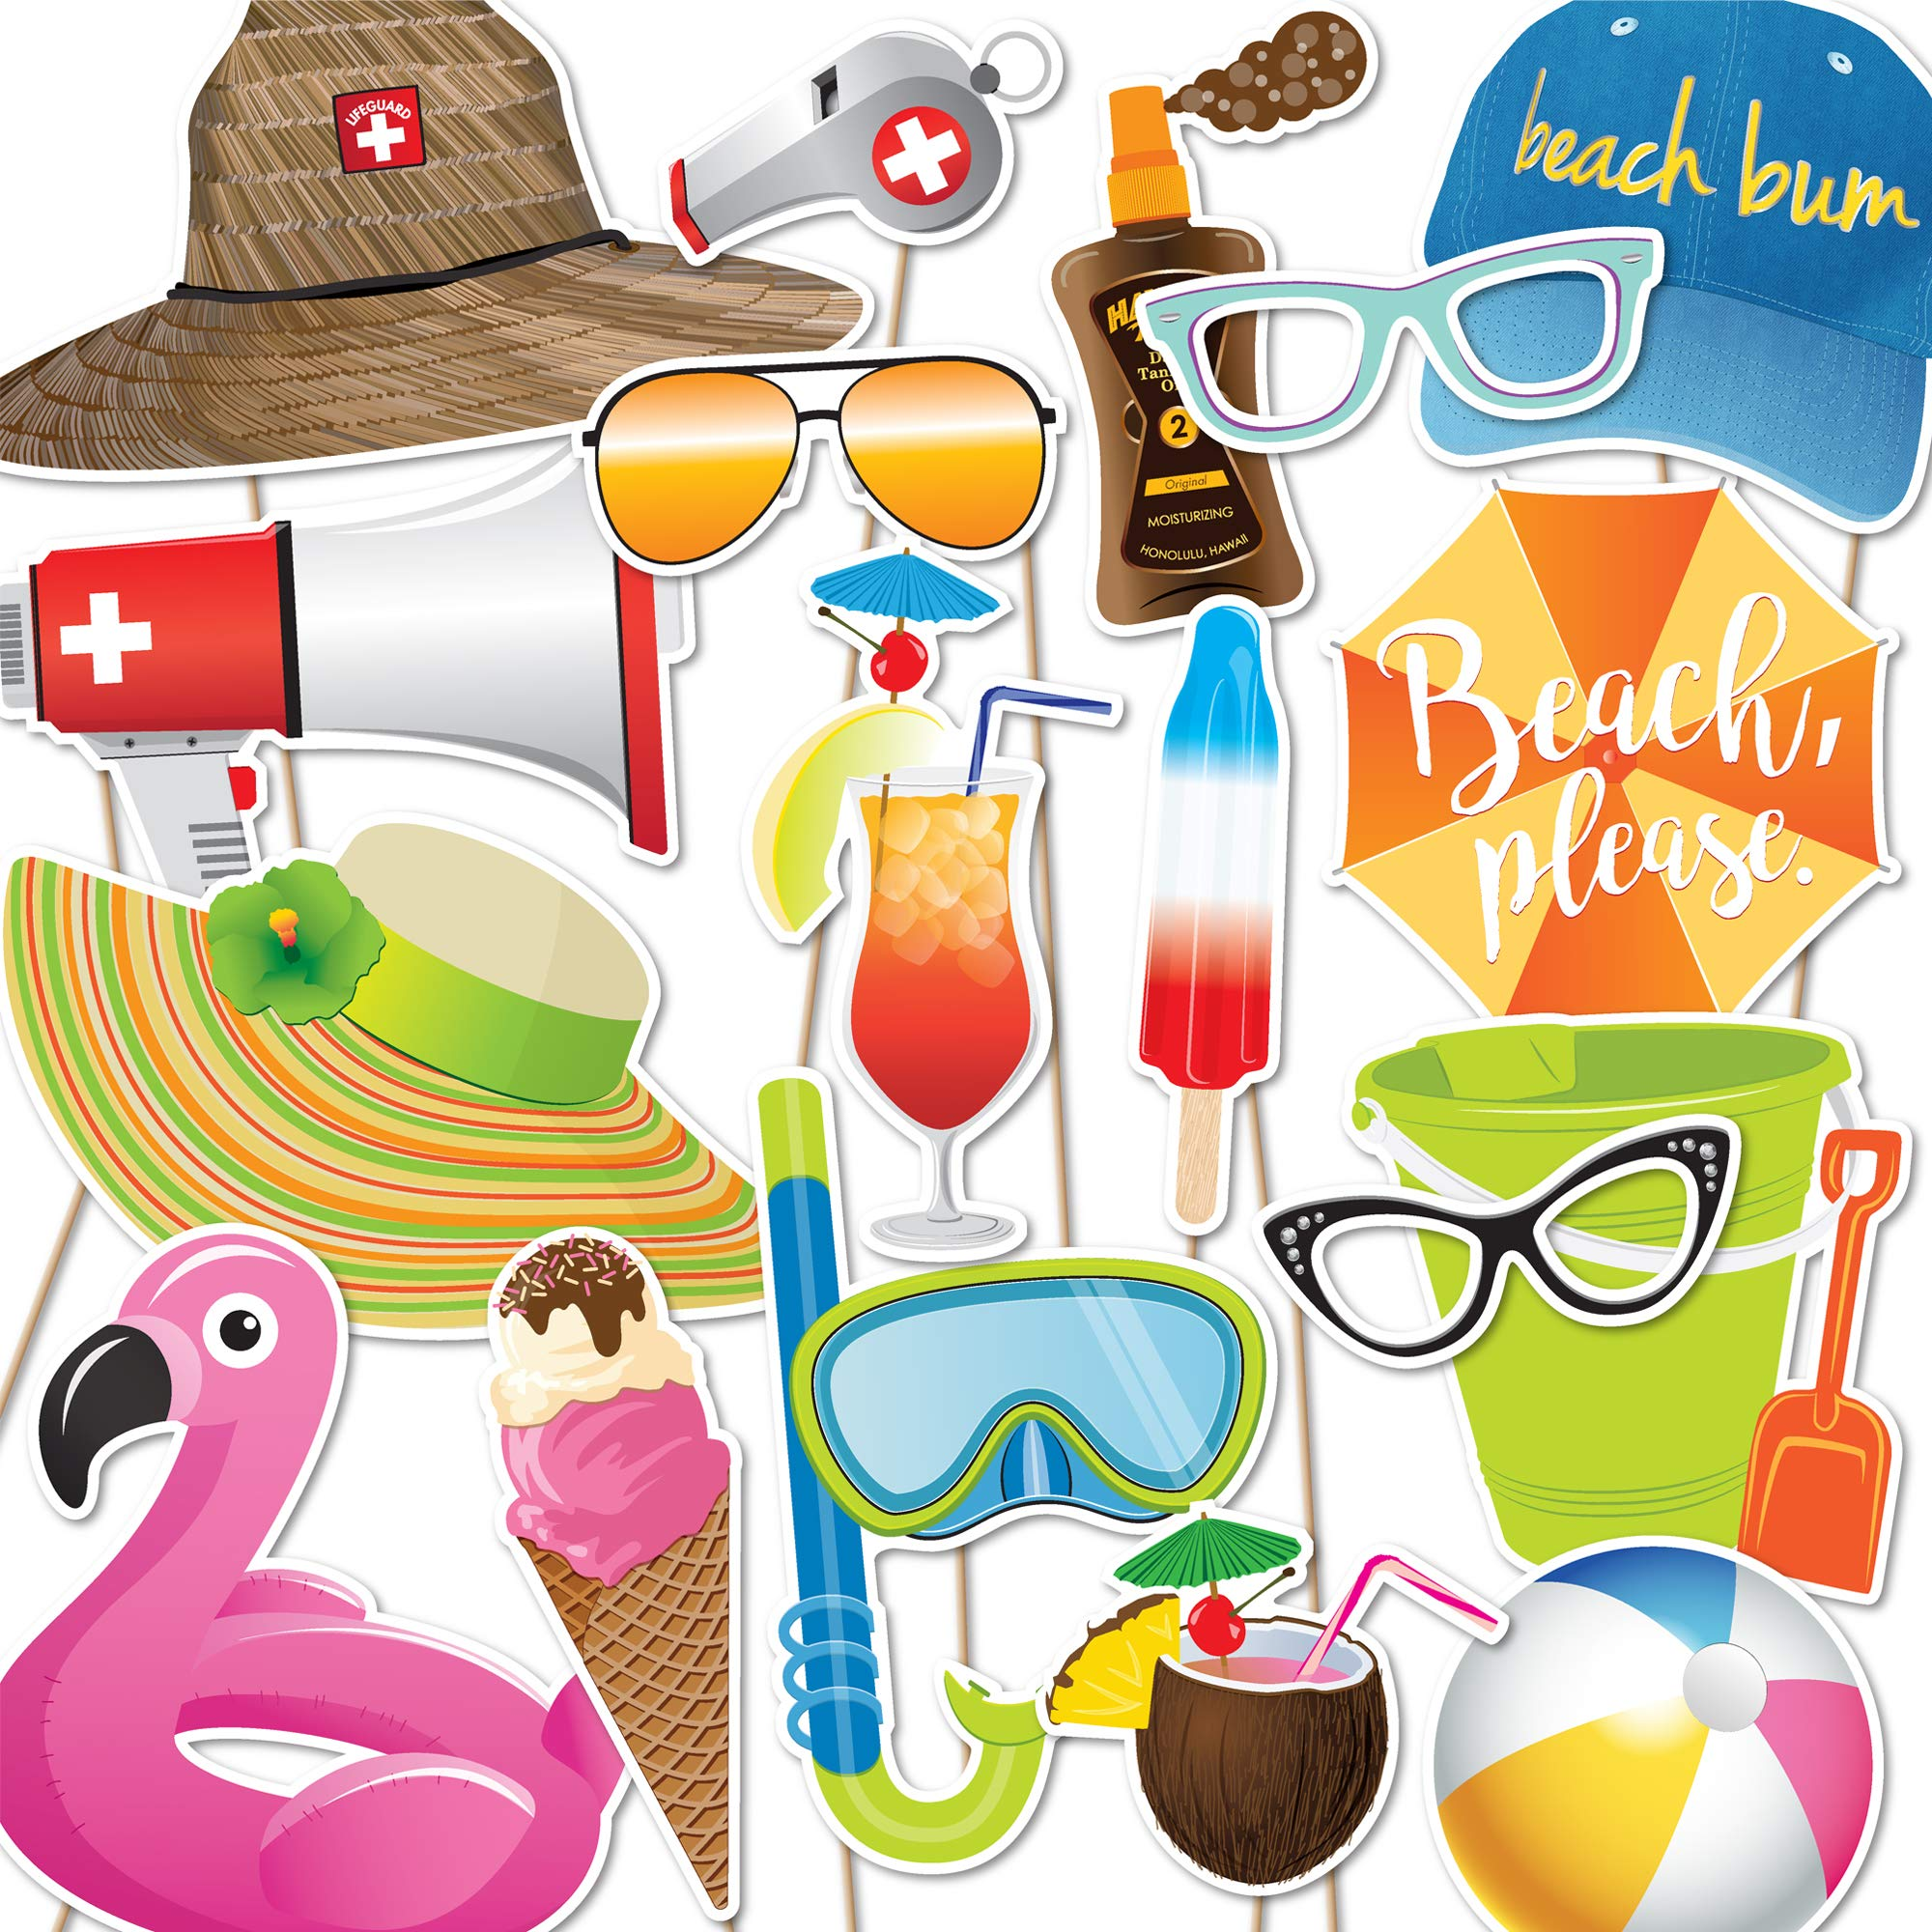 Beach Party Photo Booth Props by Paper and Cake - 18 piece set